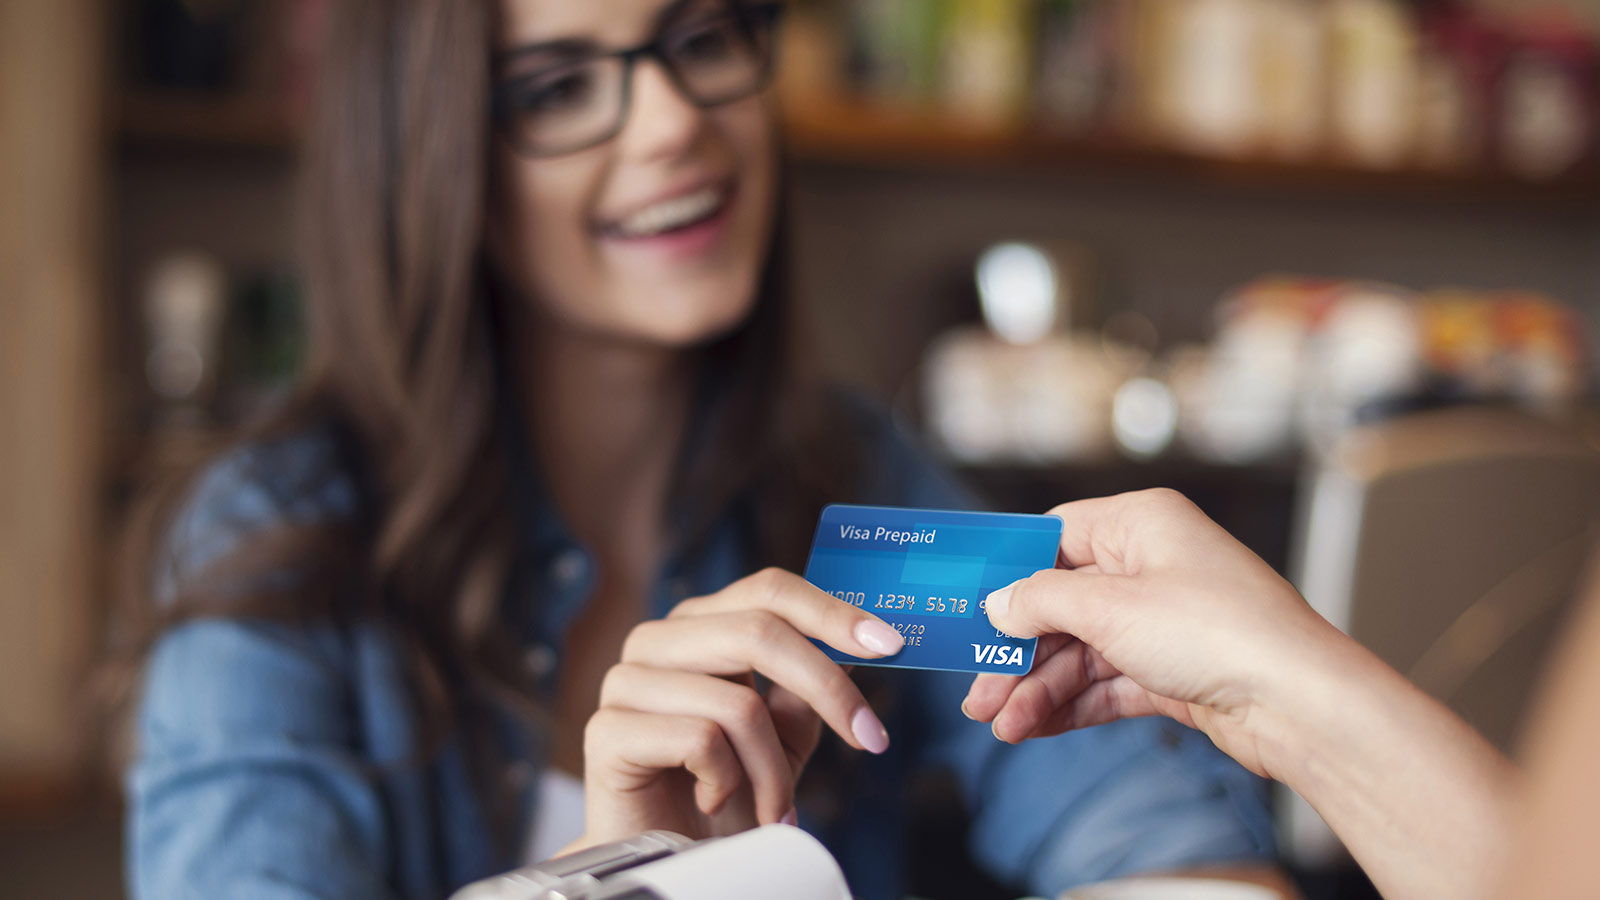 customer hands smiling cashier Visa prepaid card